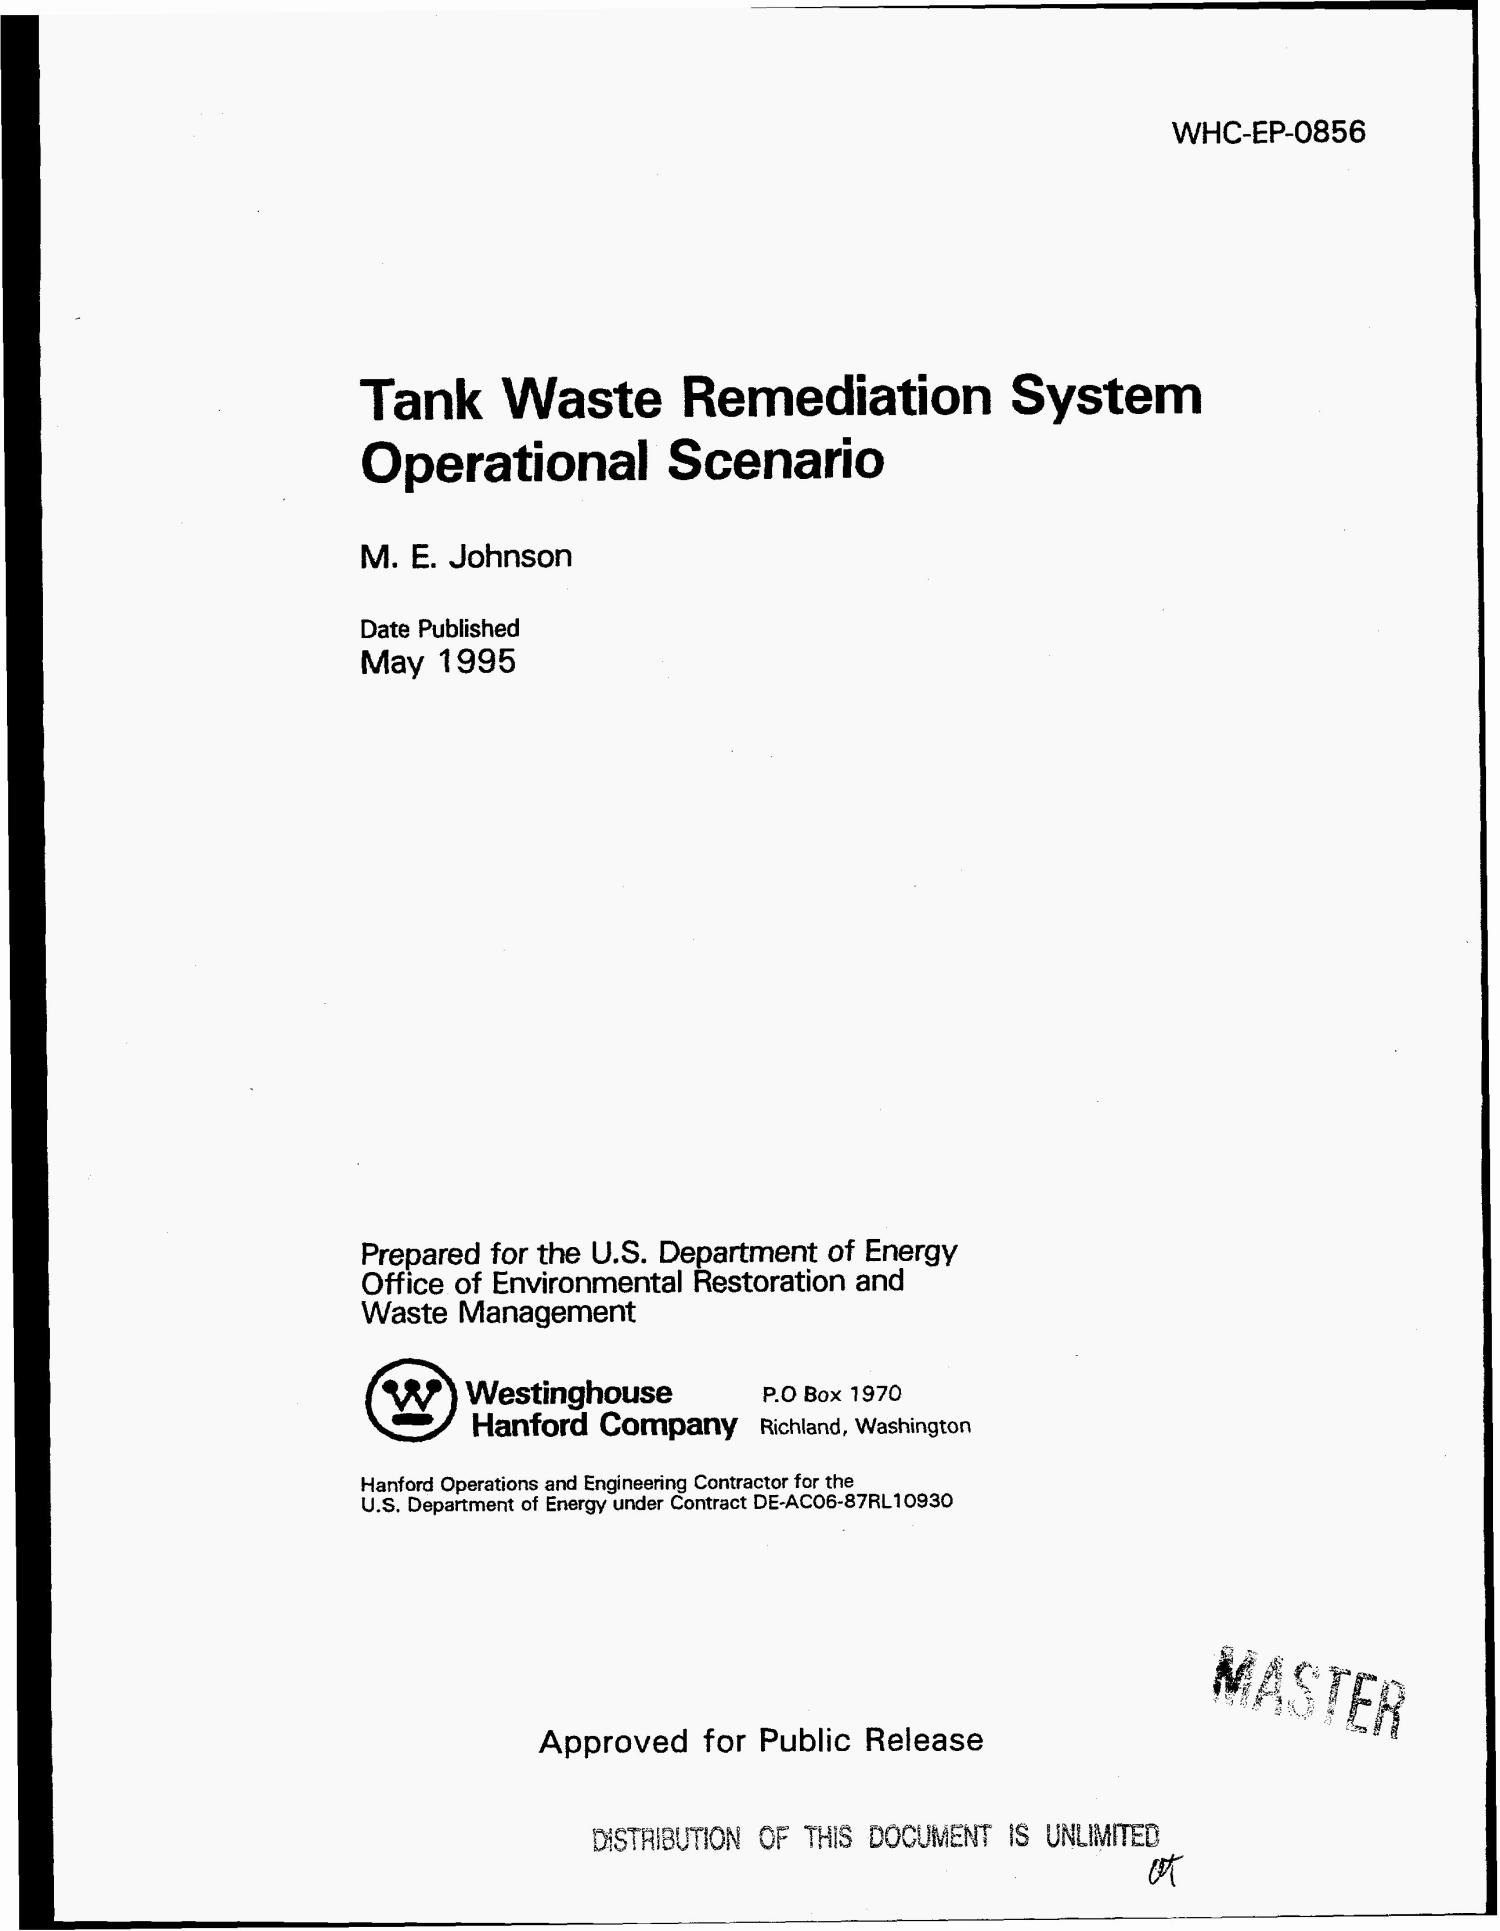 Tank waste remediation system operational scenario                                                                                                      [Sequence #]: 1 of 47